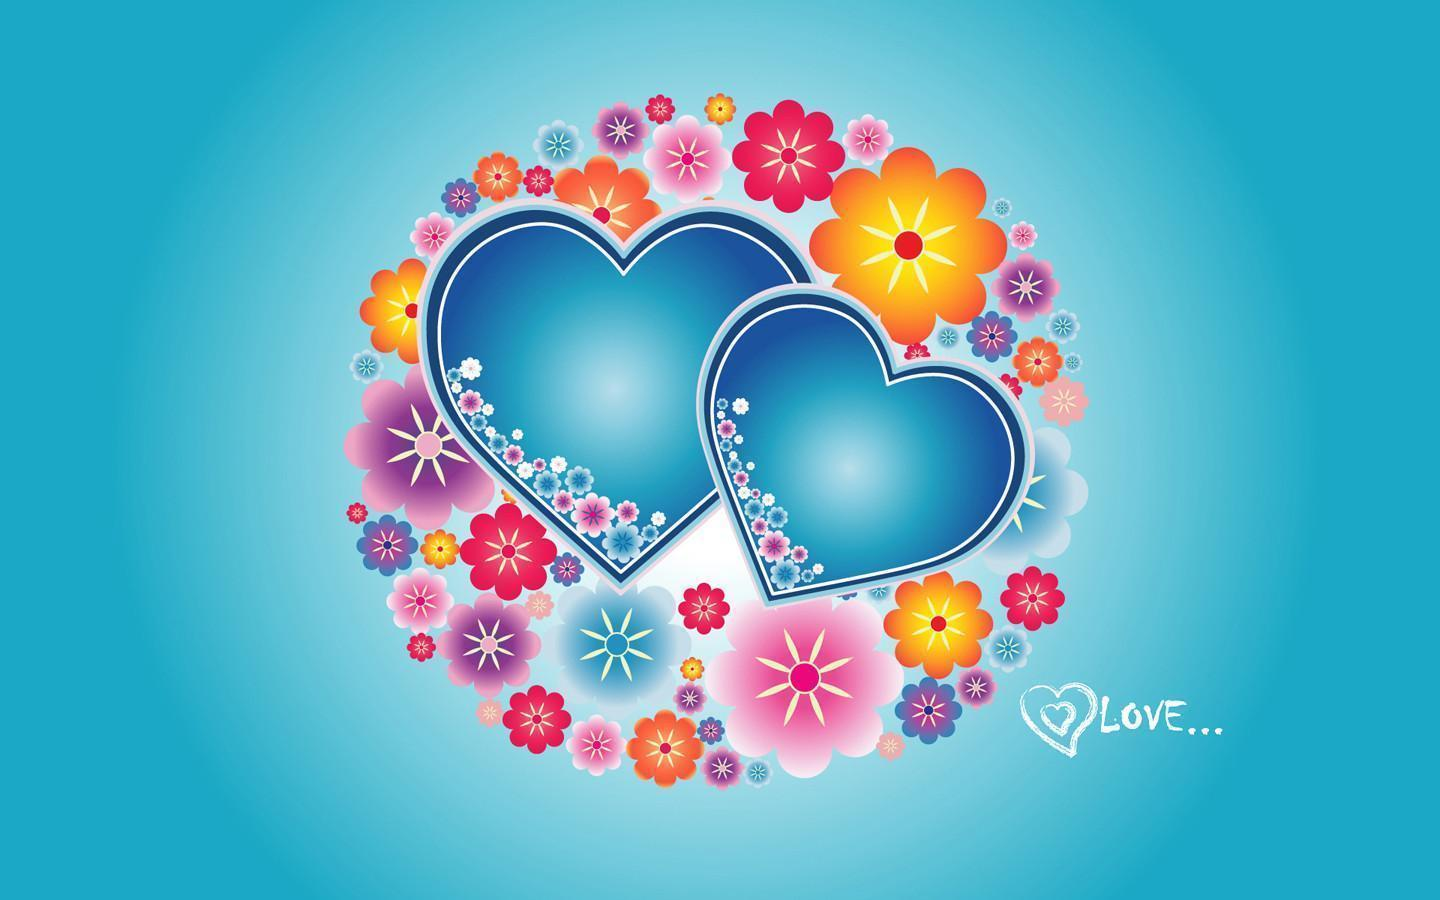 Love Heart Wallpapers HD - Wallpaper Cave